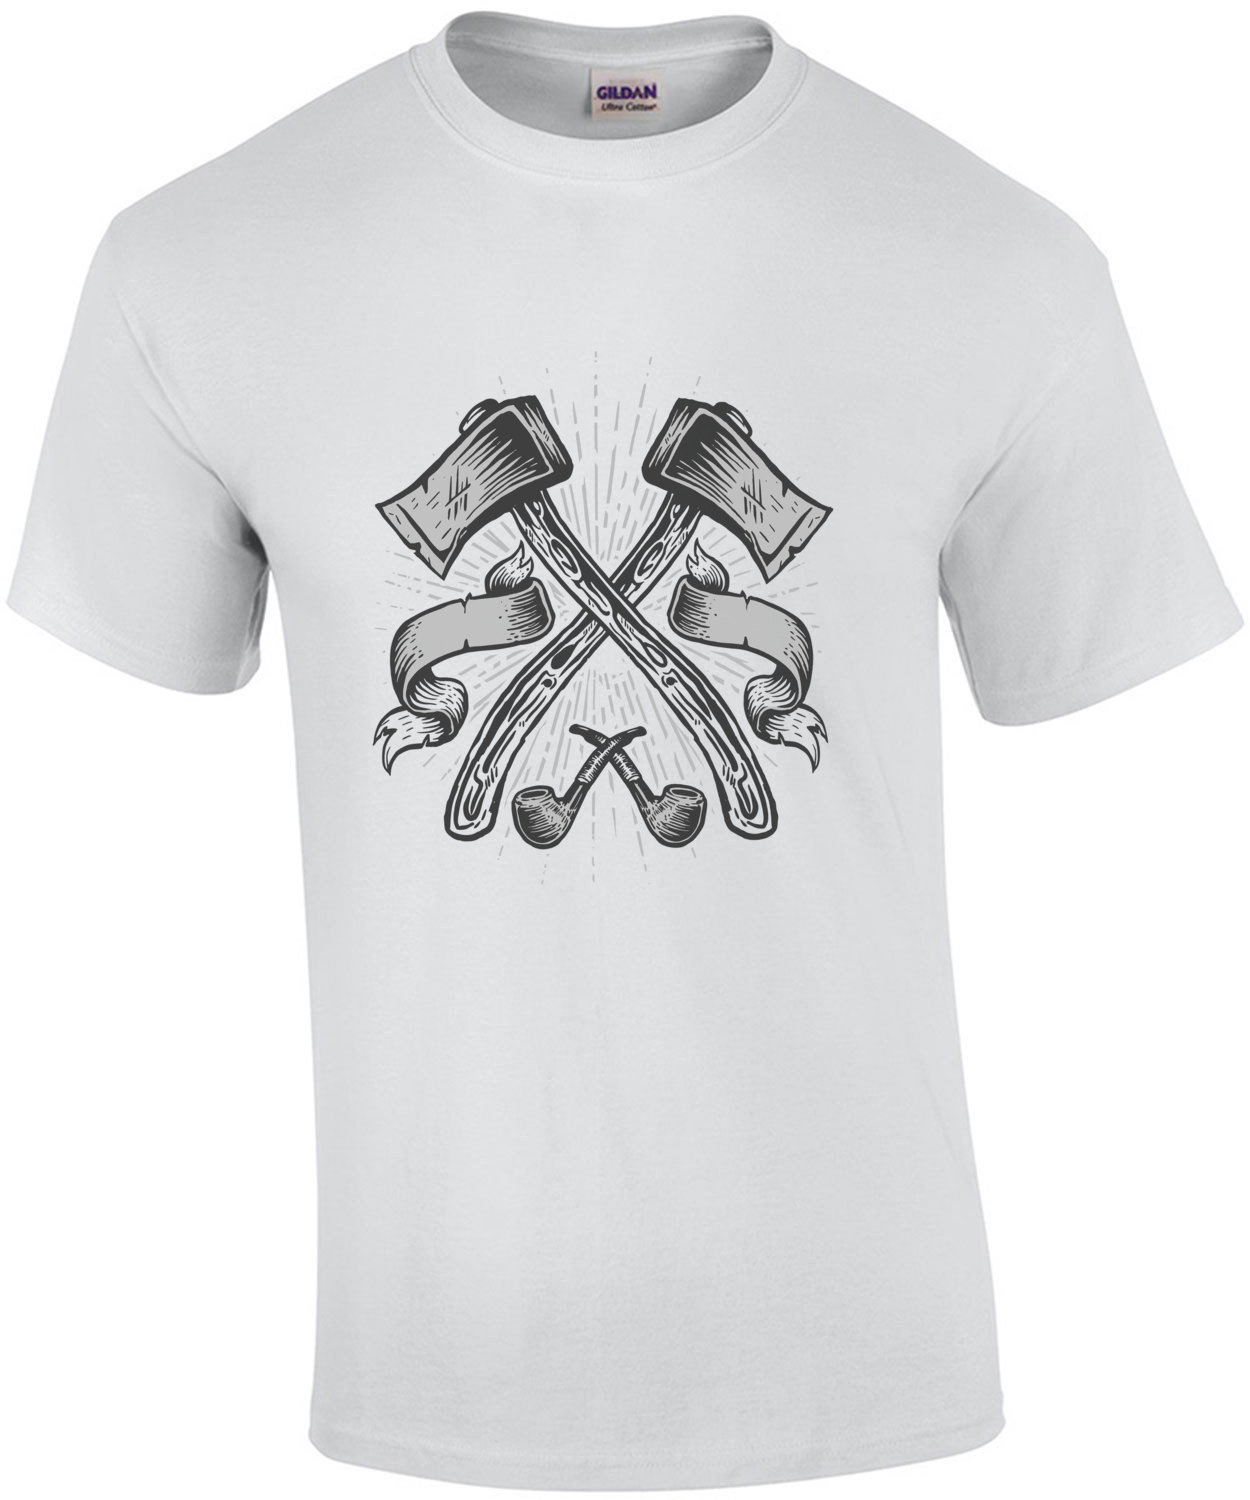 Axes And Pipes Manly Man Lumberjack T-Shirt